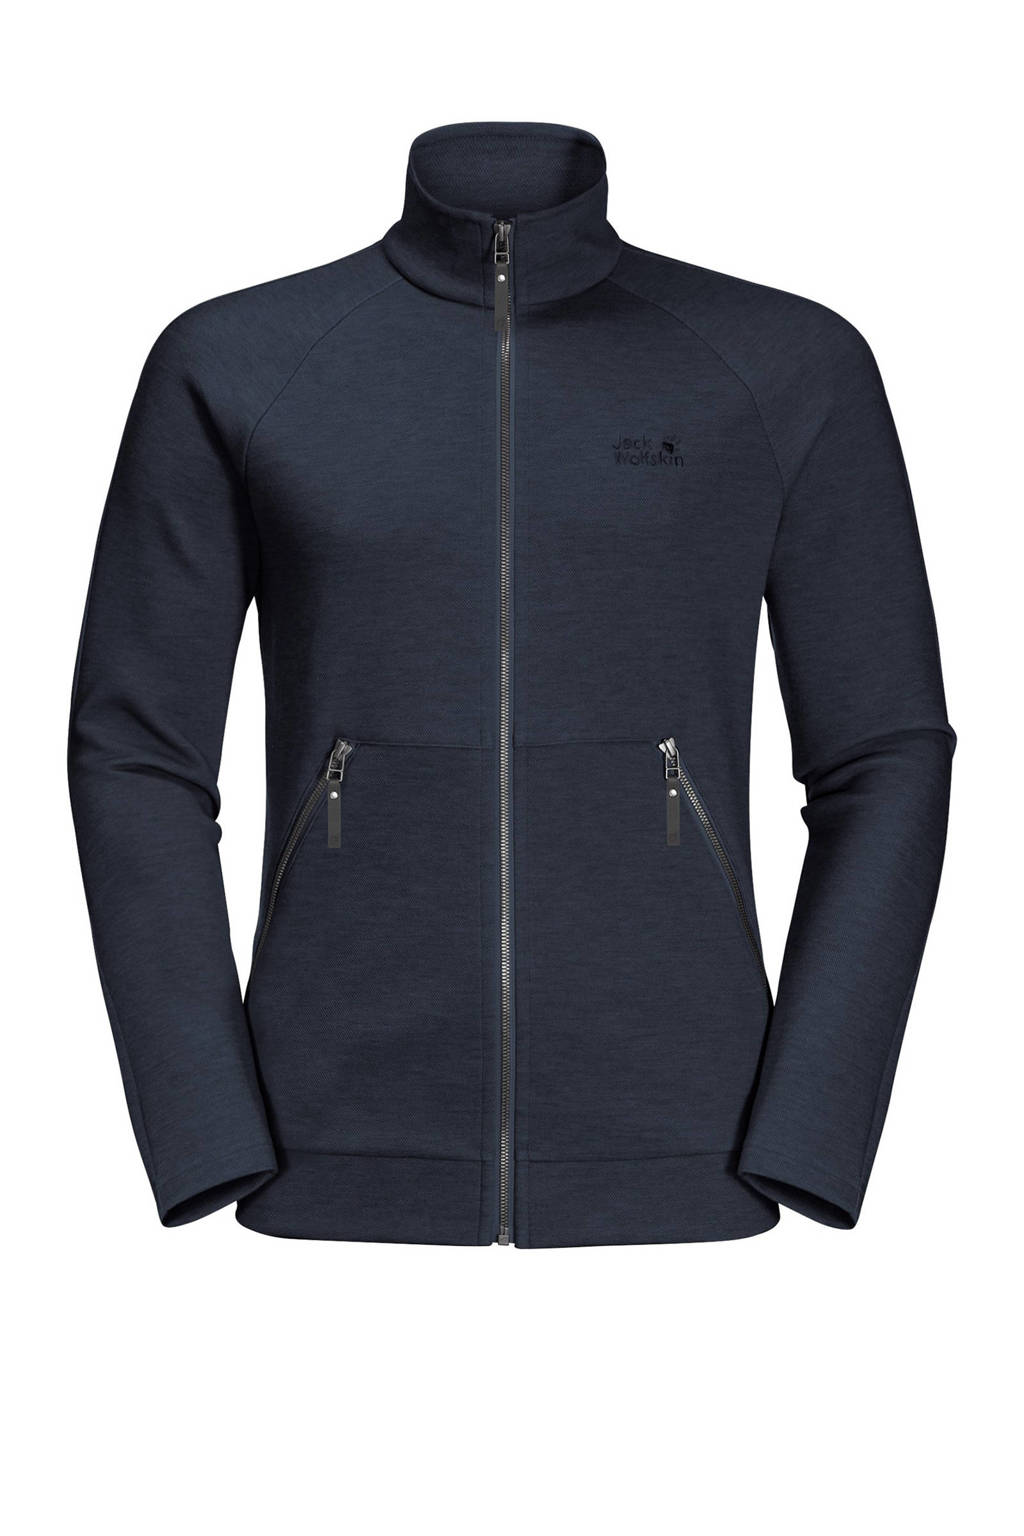 Jack Wolfskin outdoor jas donkerblauw, Night-Blue